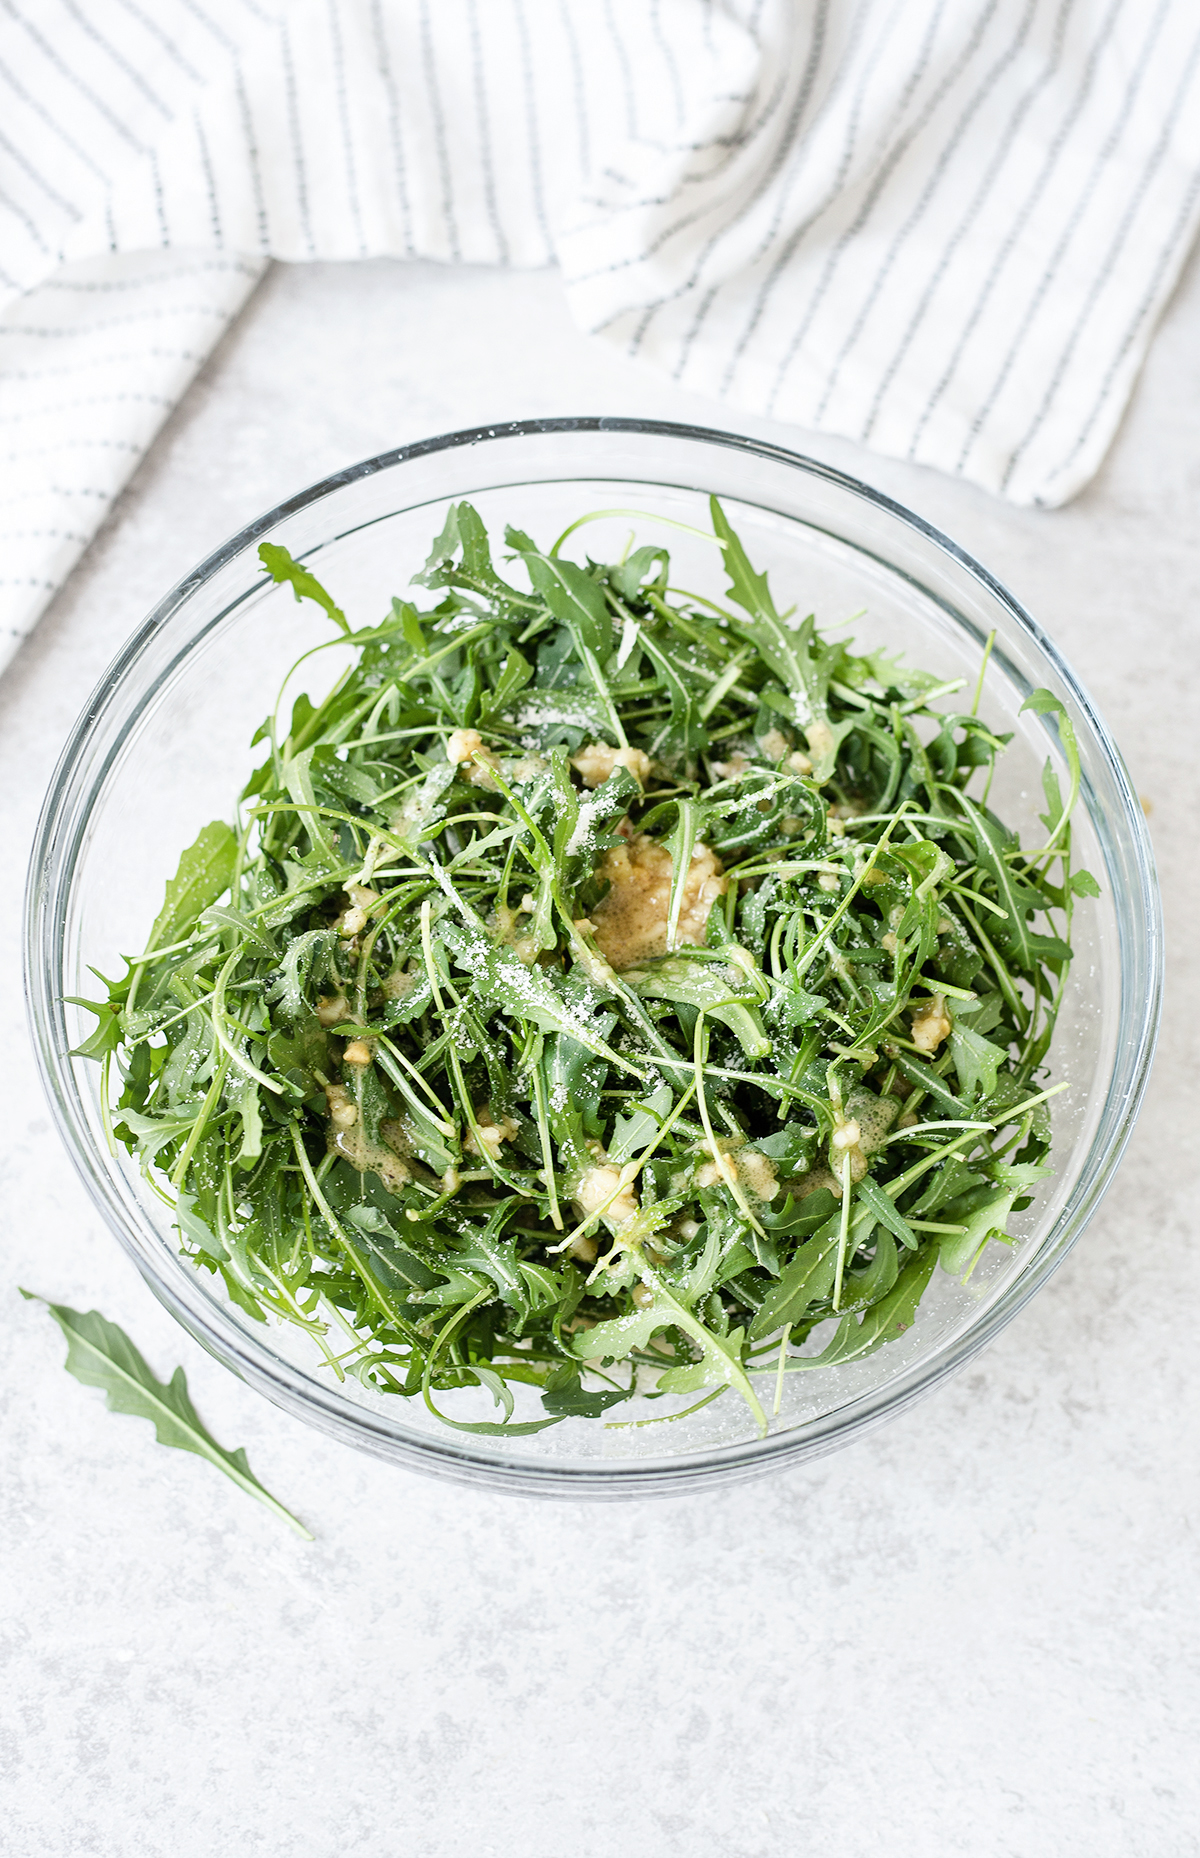 Rocket Salad is a simple side dish that is easy to make